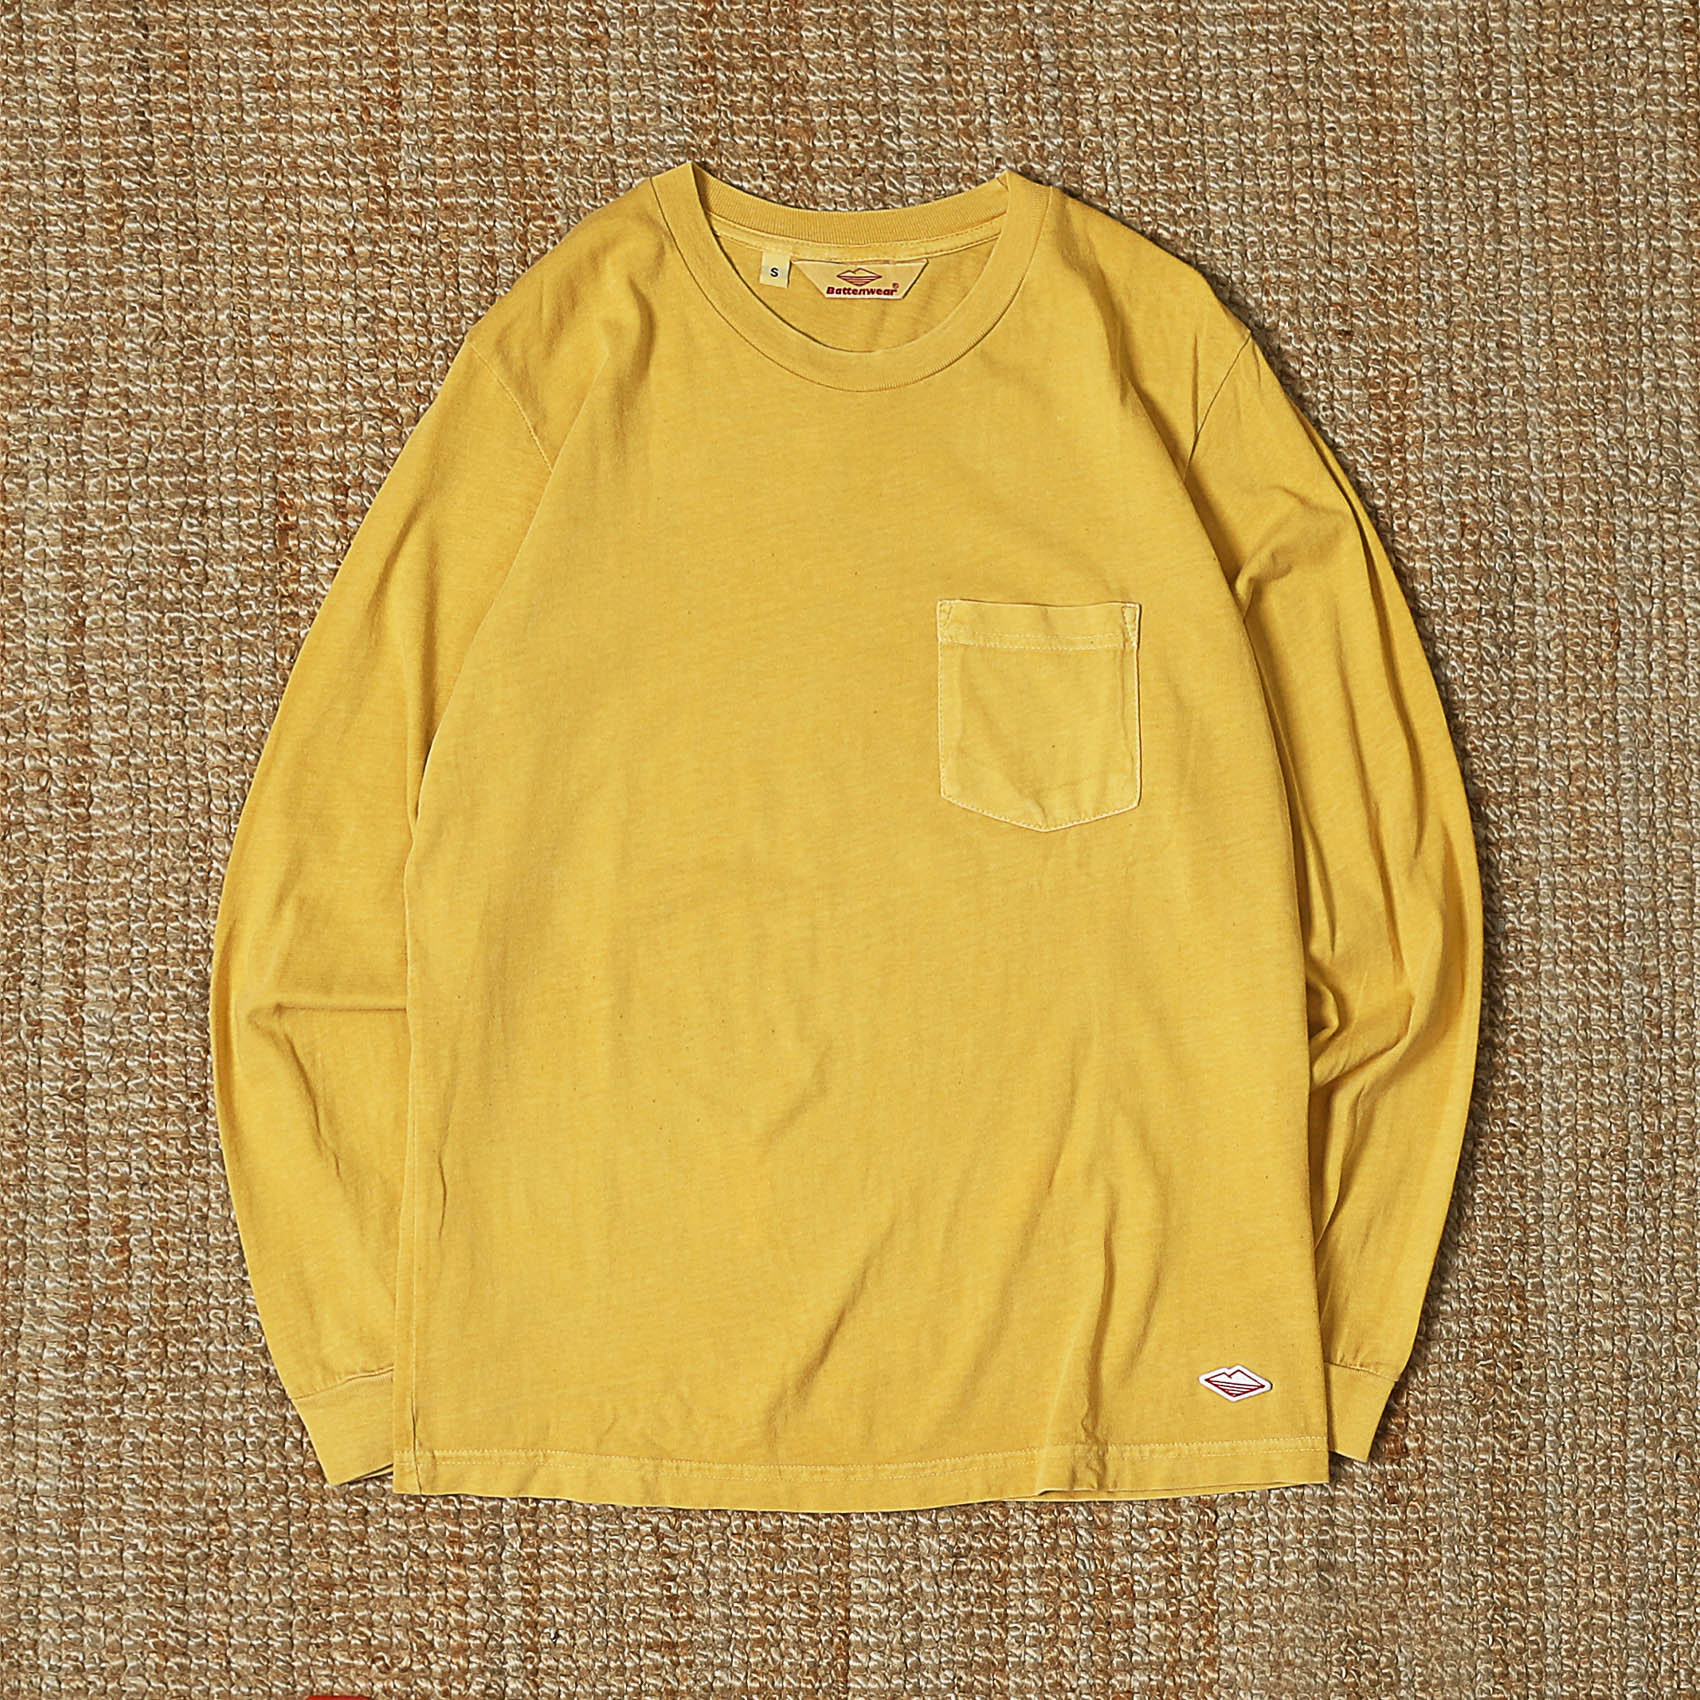 BATTENWEAR L/S POCKET TEE - YELLOW